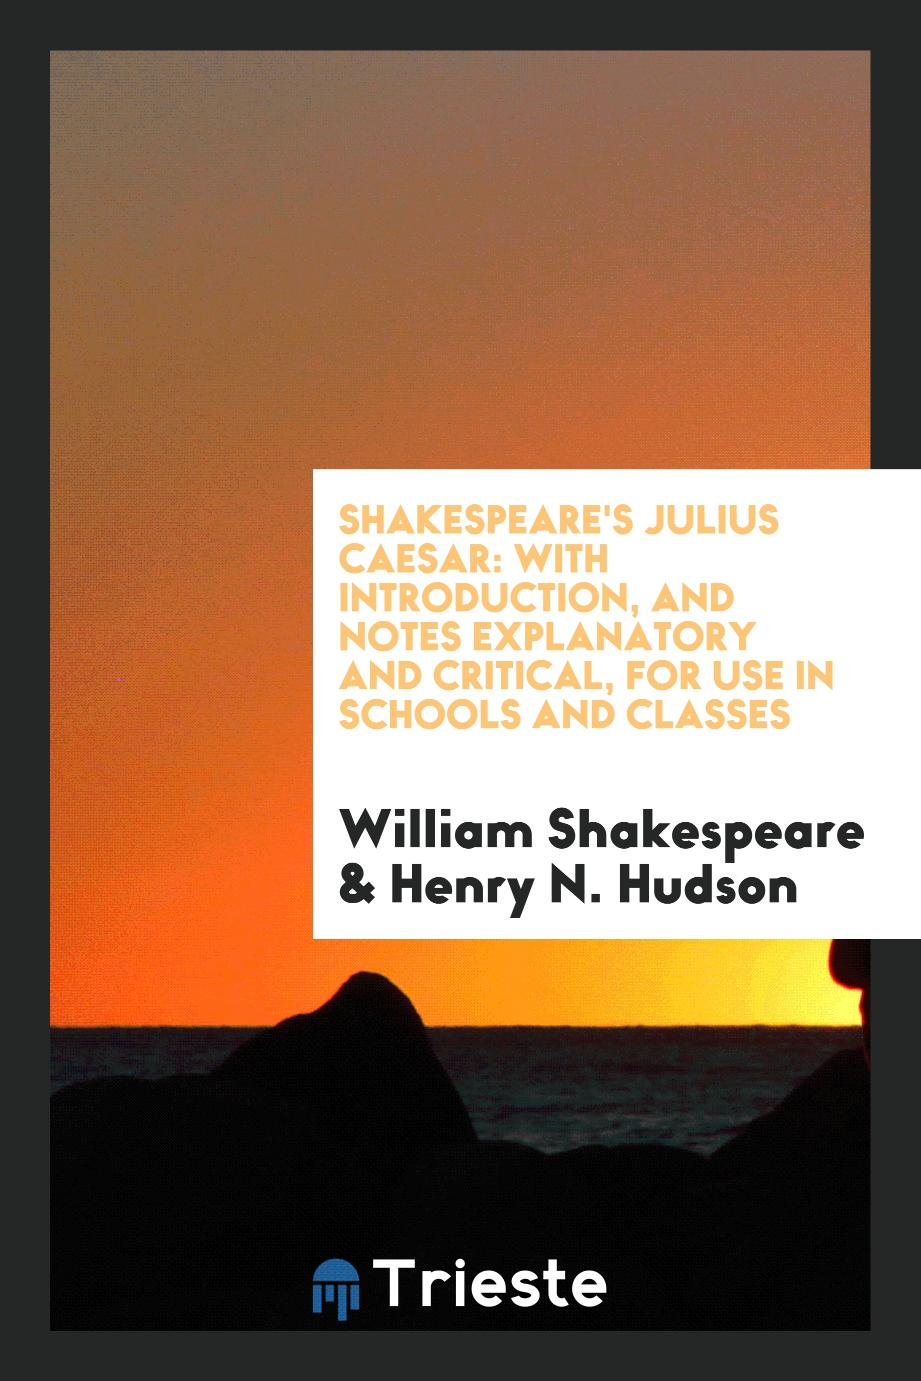 Shakespeare's Julius Caesar: With Introduction, and Notes Explanatory and Critical, for Use in Schools and Classes